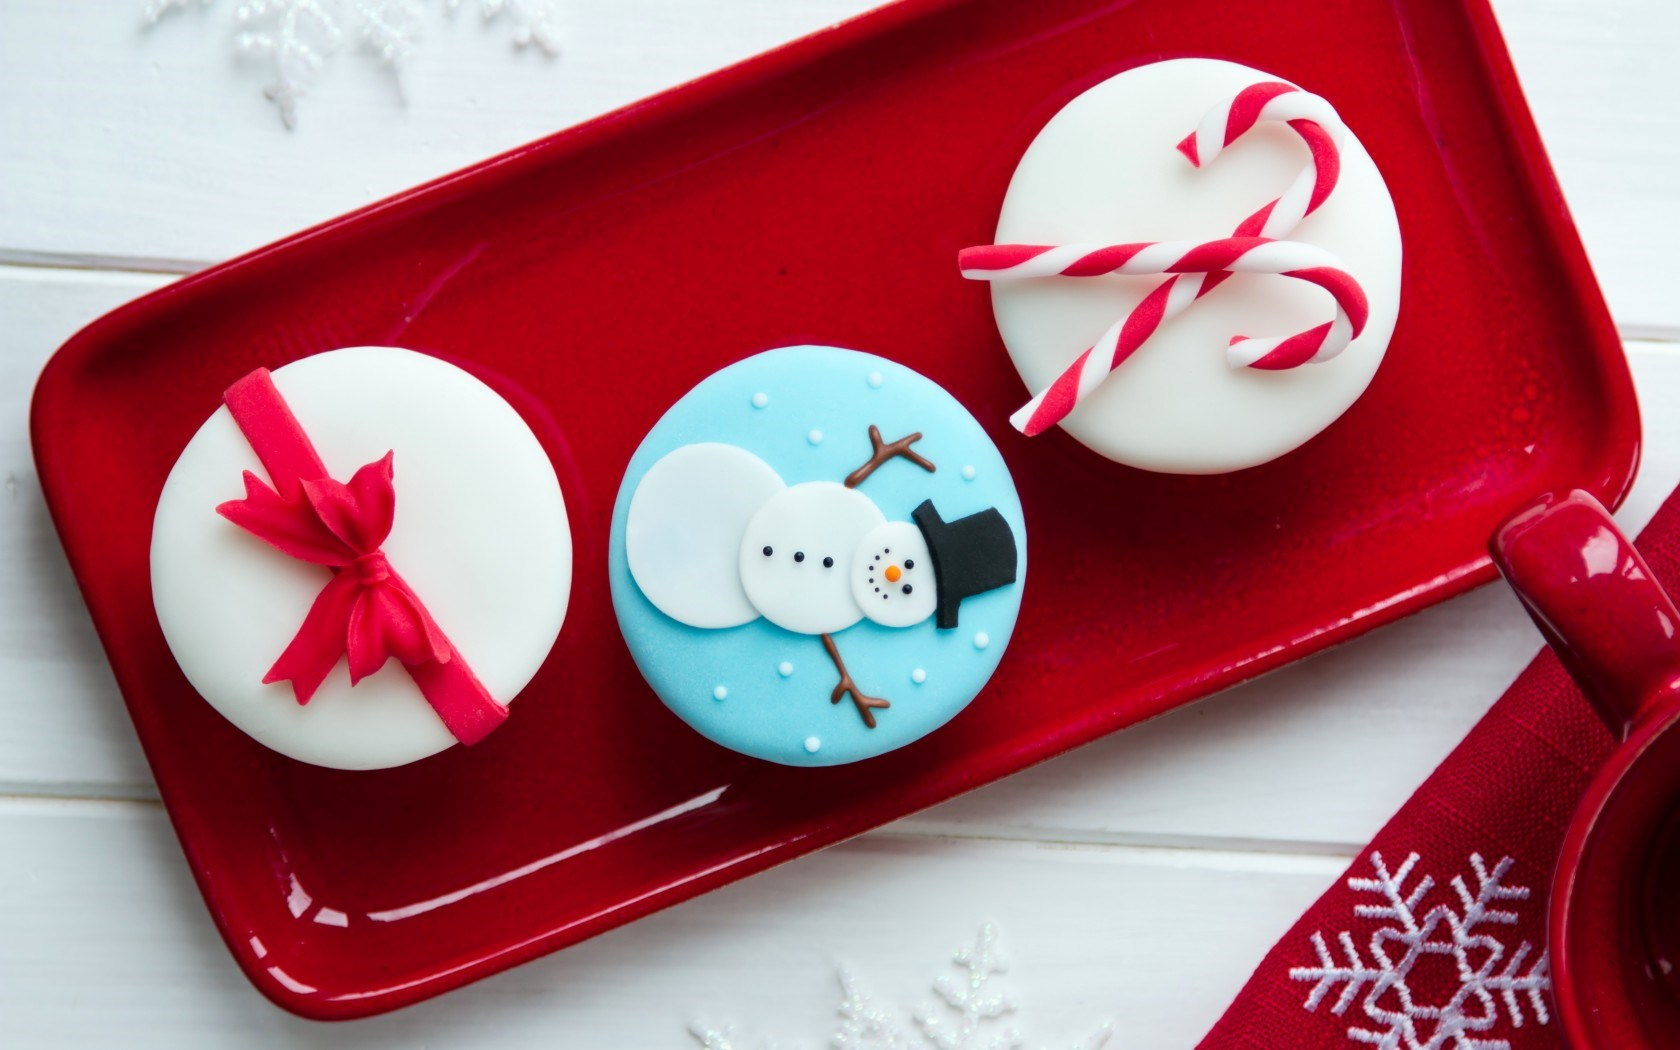 Sweets Cakes Cream Christmas Food Cup Red Holiday New Year